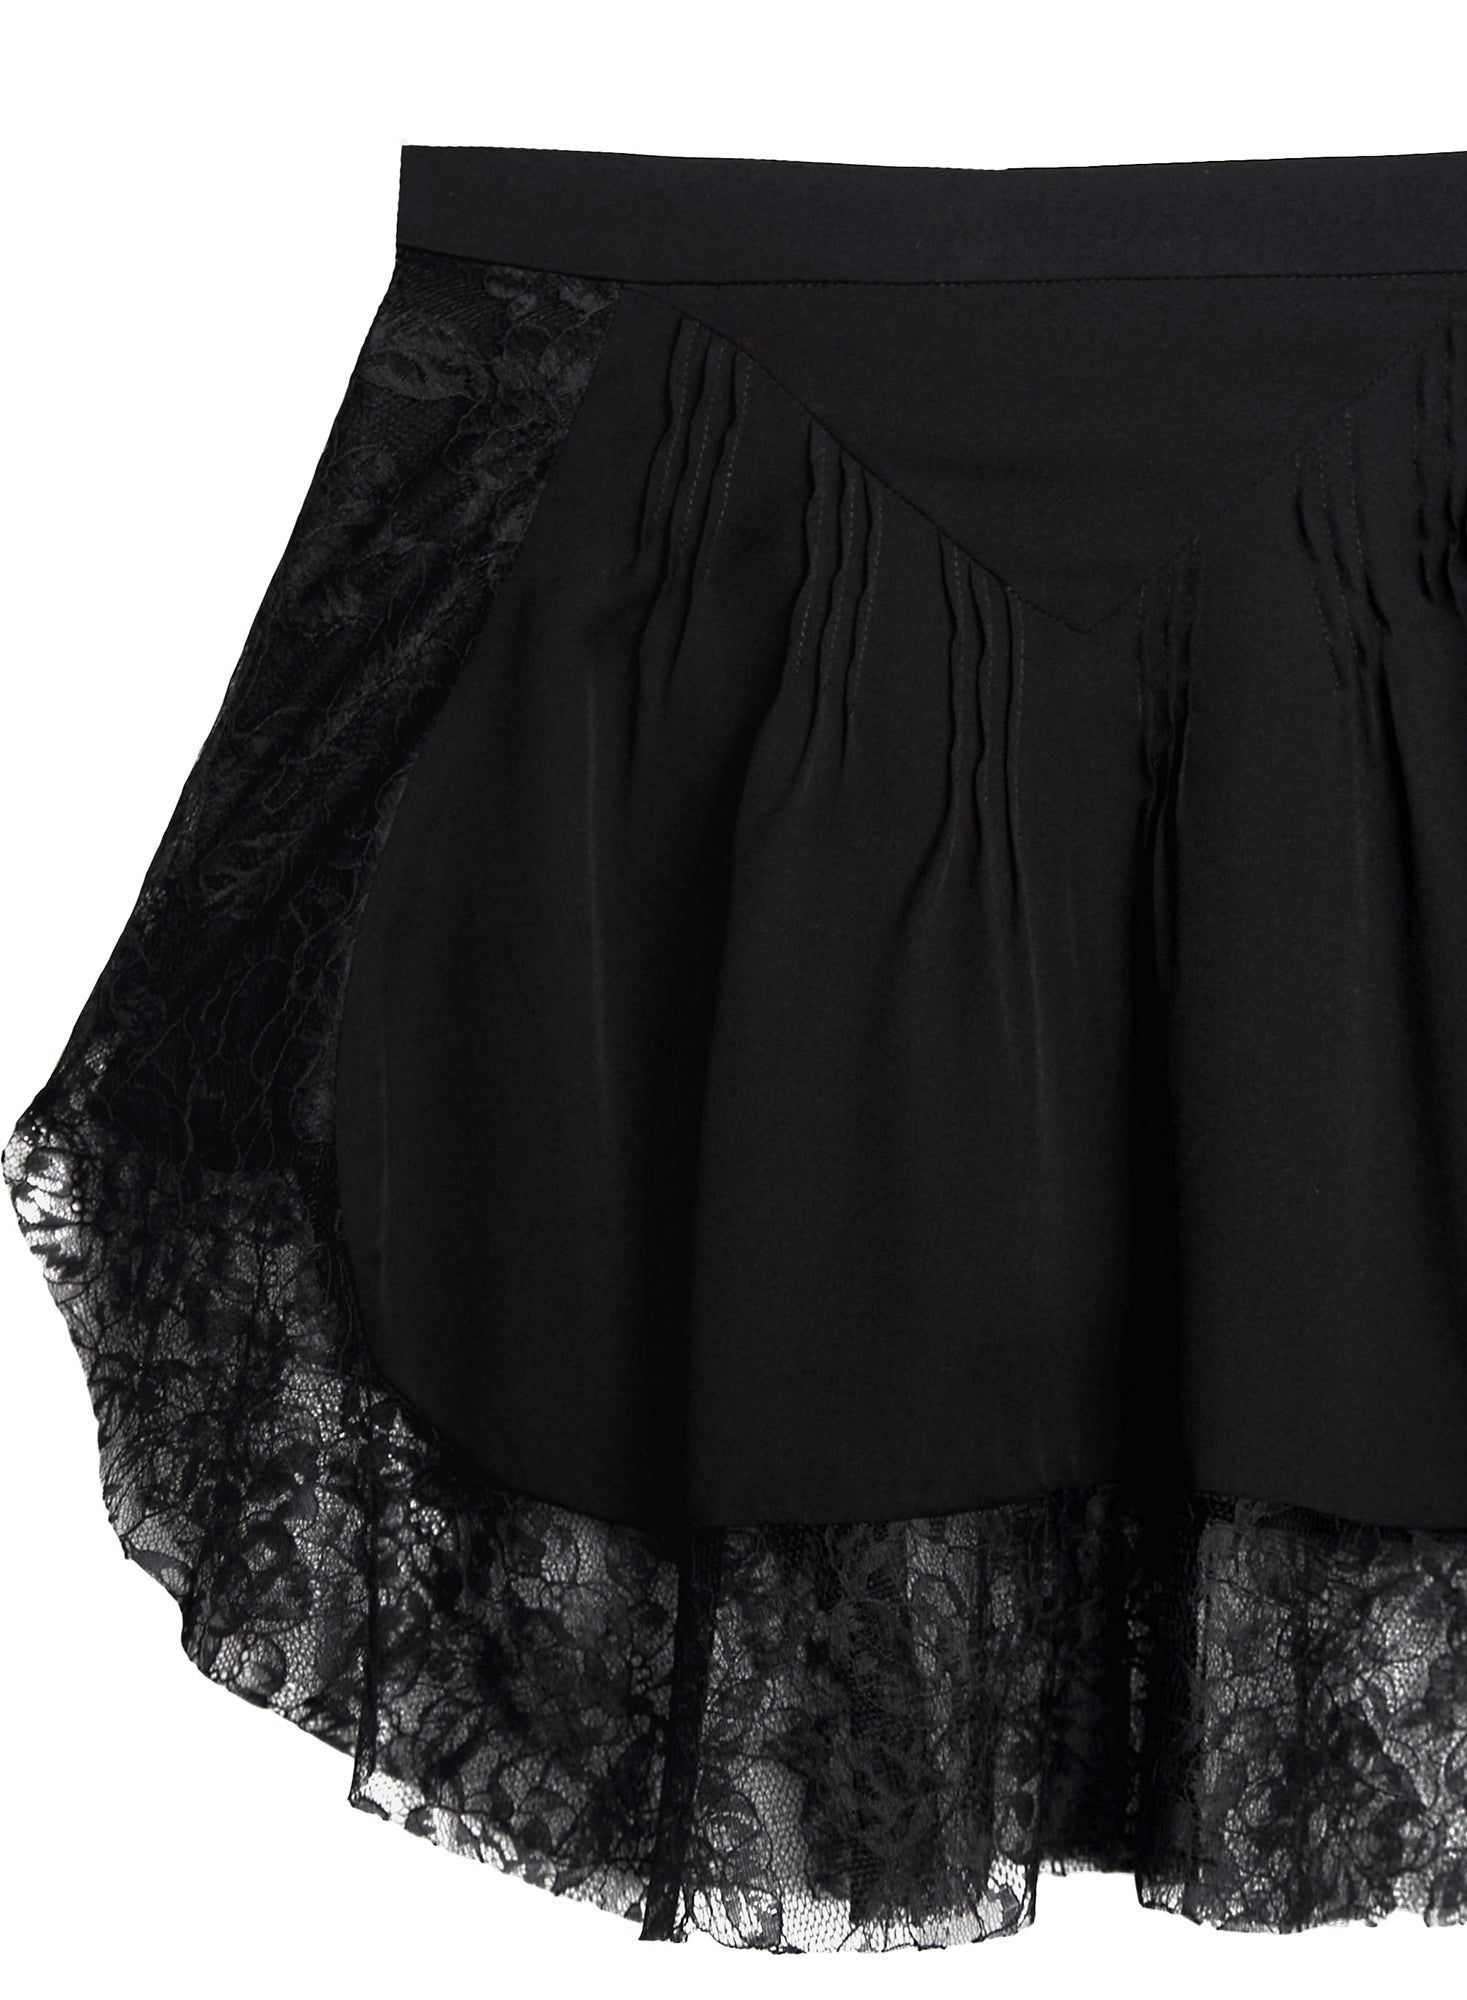 Loulou Lace Border Pintuck Skirt